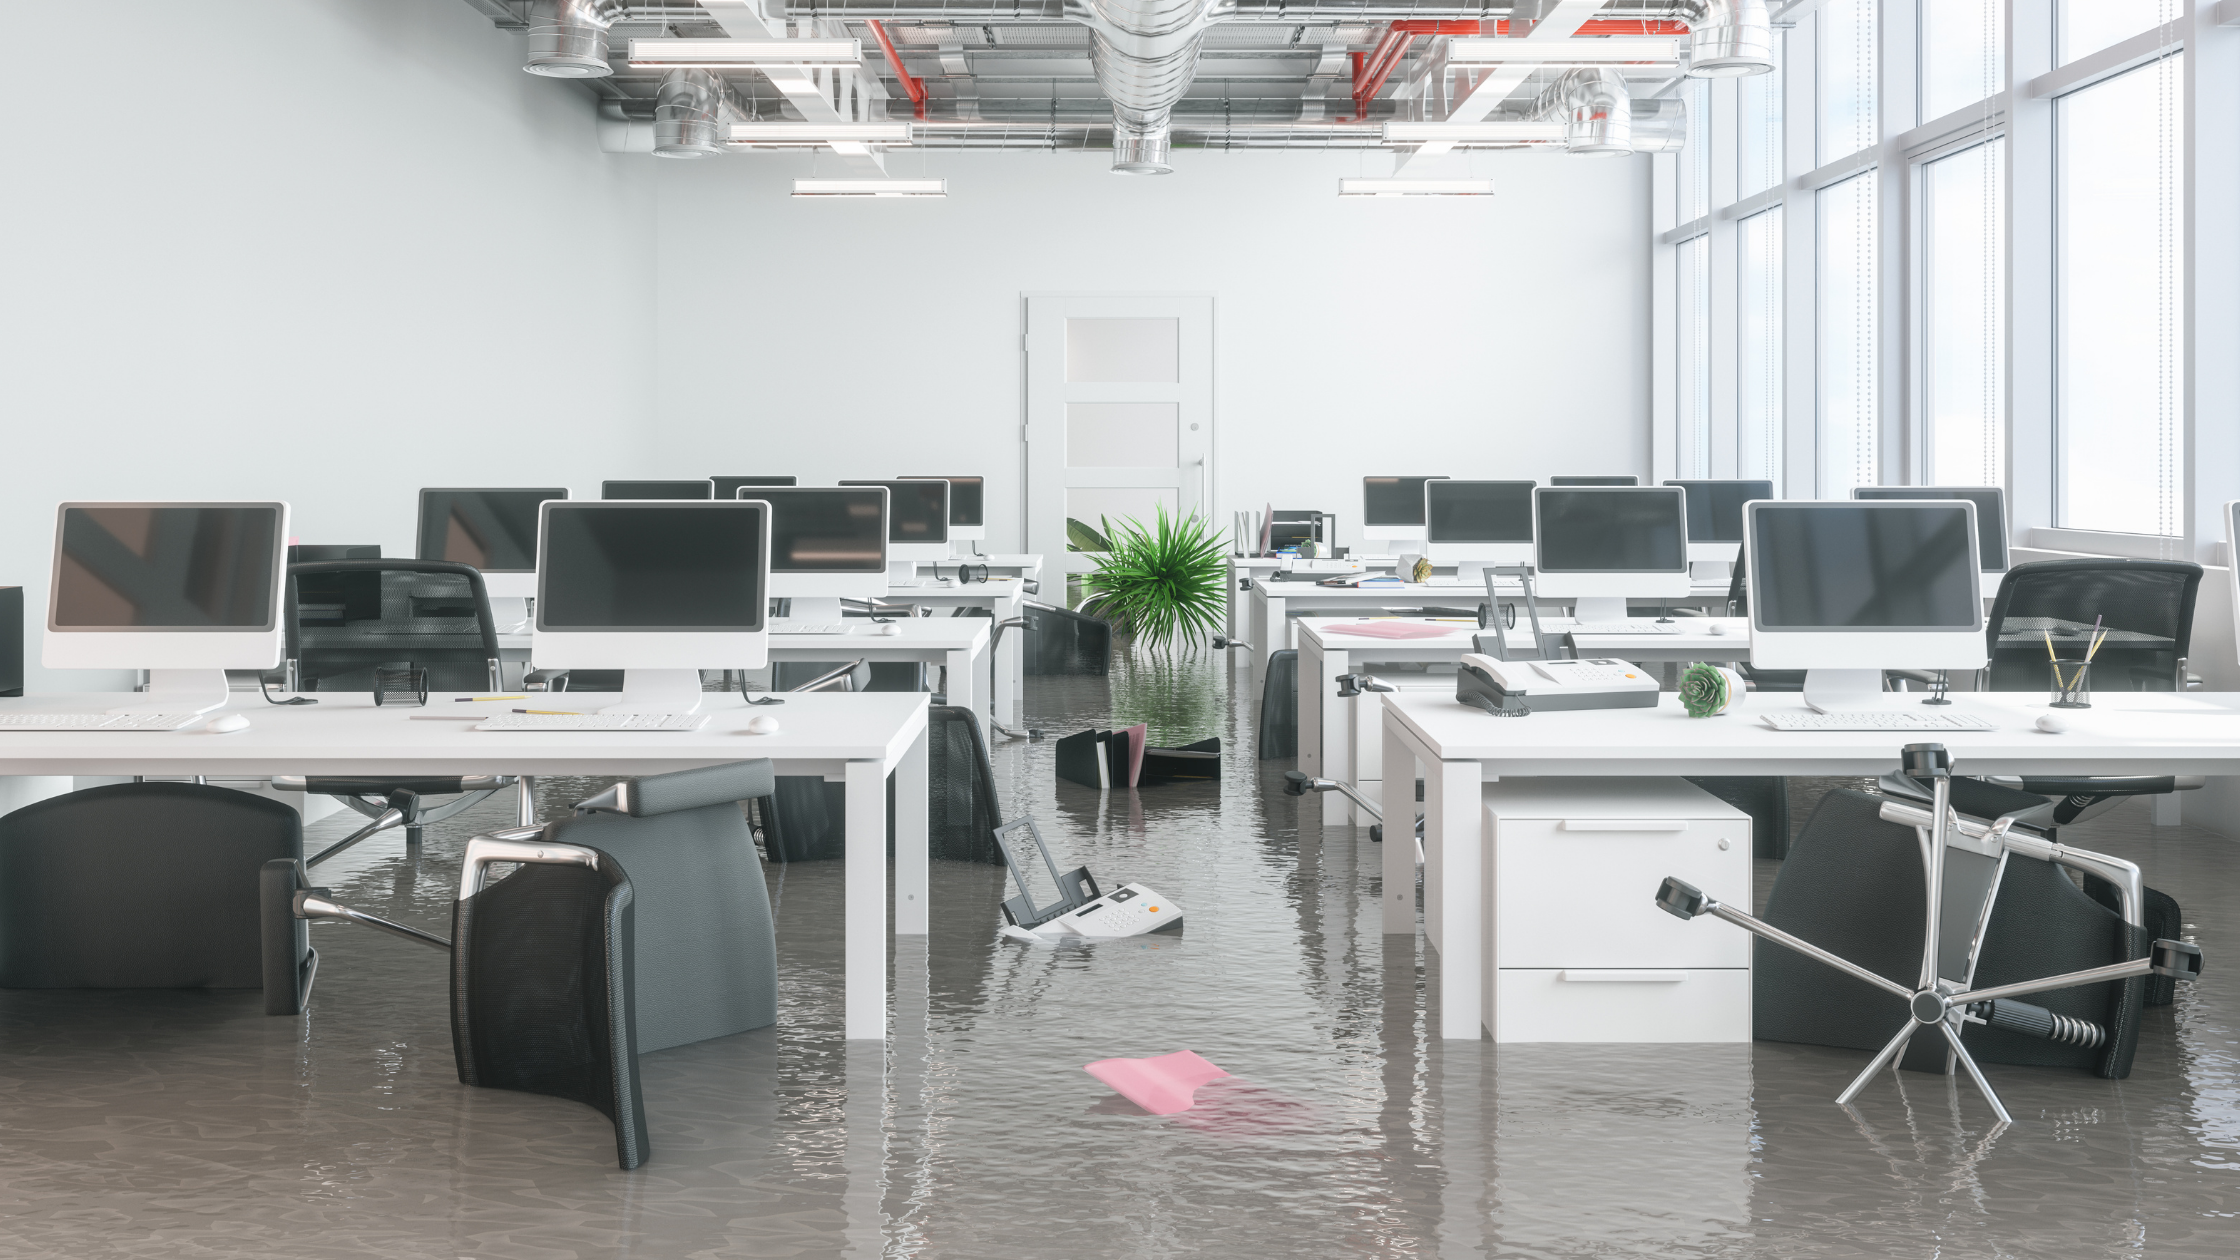 Floods, Fire, Drought & Covid 19 – Small Business takes all the hits!